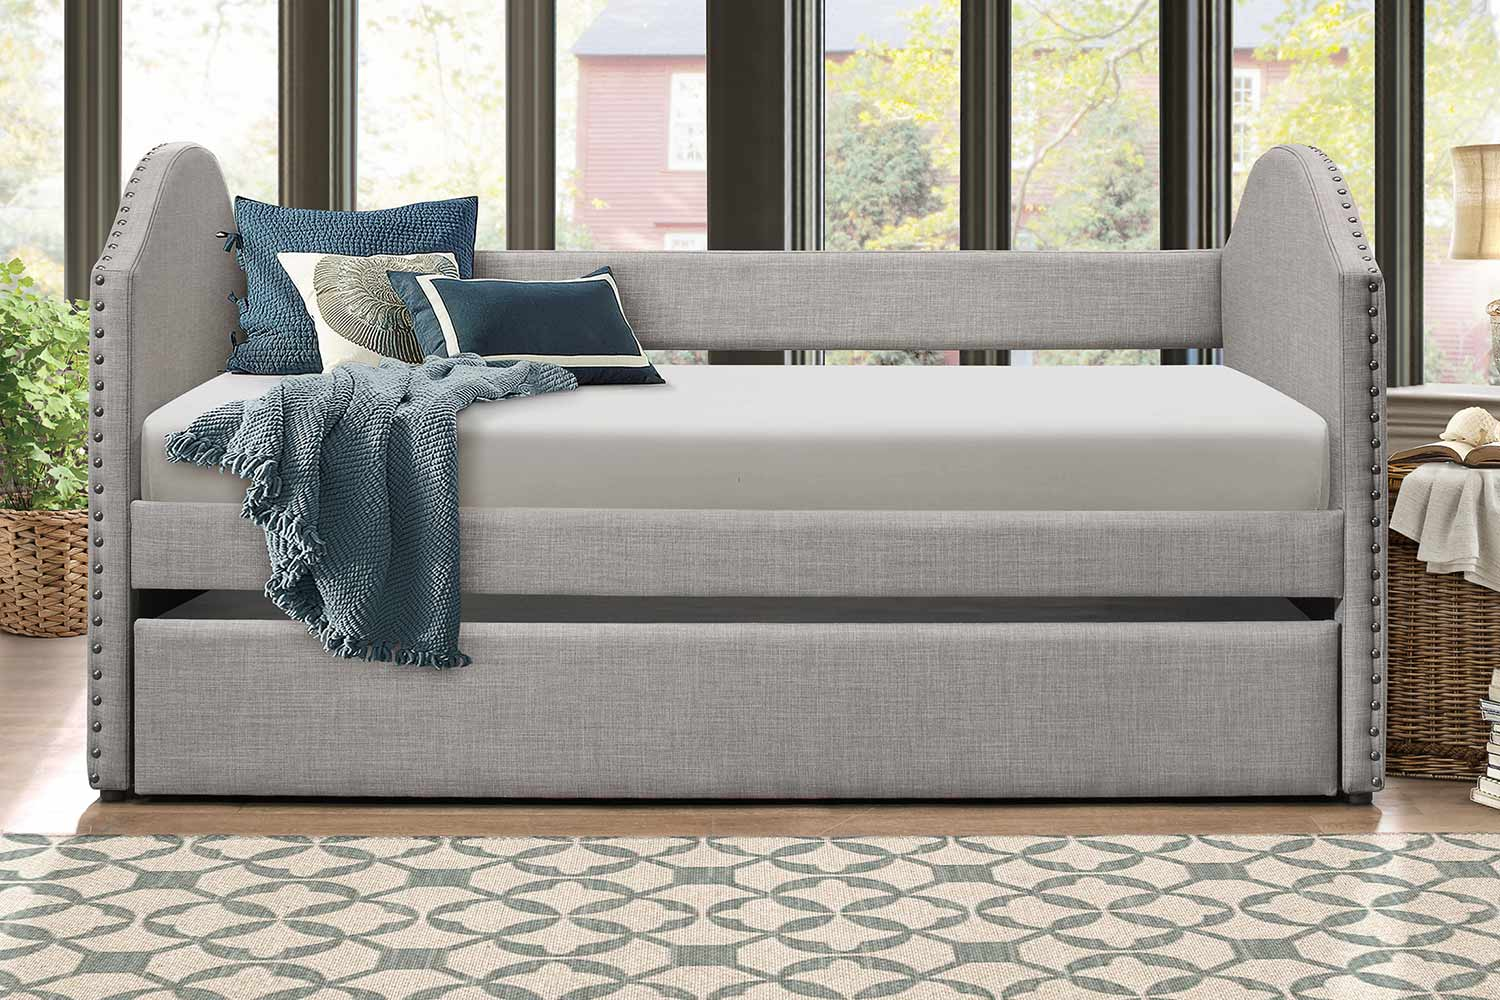 Homelegance Comfrey Daybed with Trundle - Gray